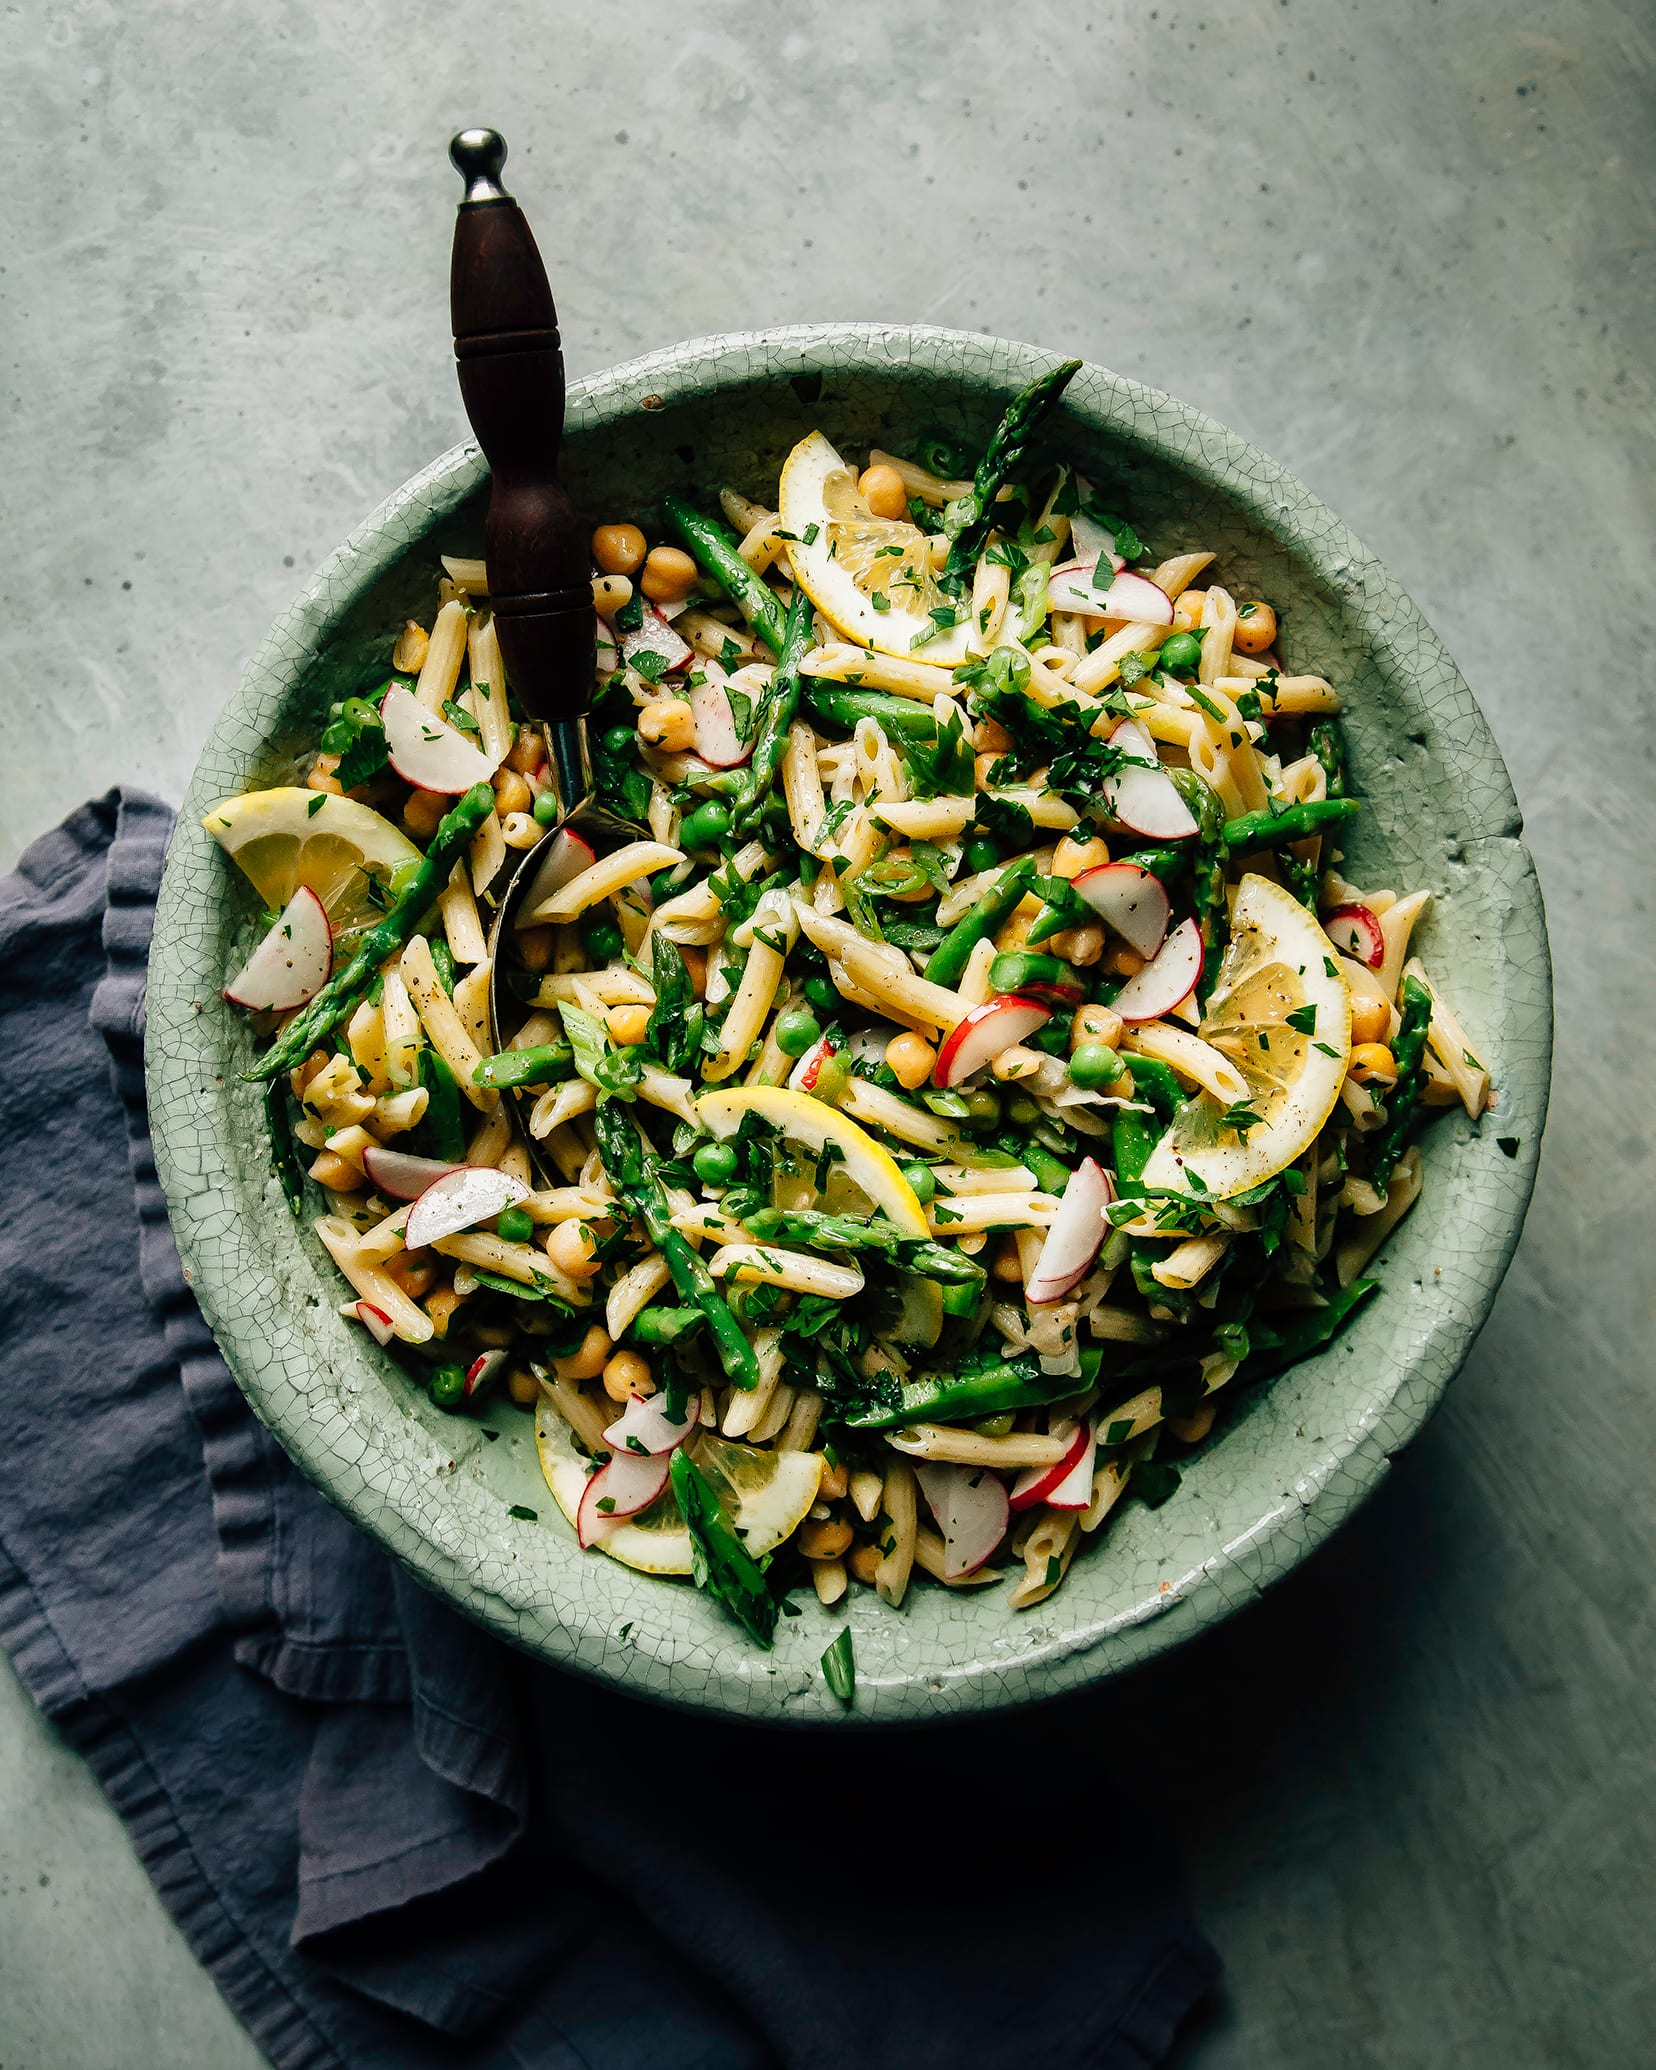 An overhead shot of a pasta salad with lots of green vegetables and herbs in a sage-green ceramic bowl.